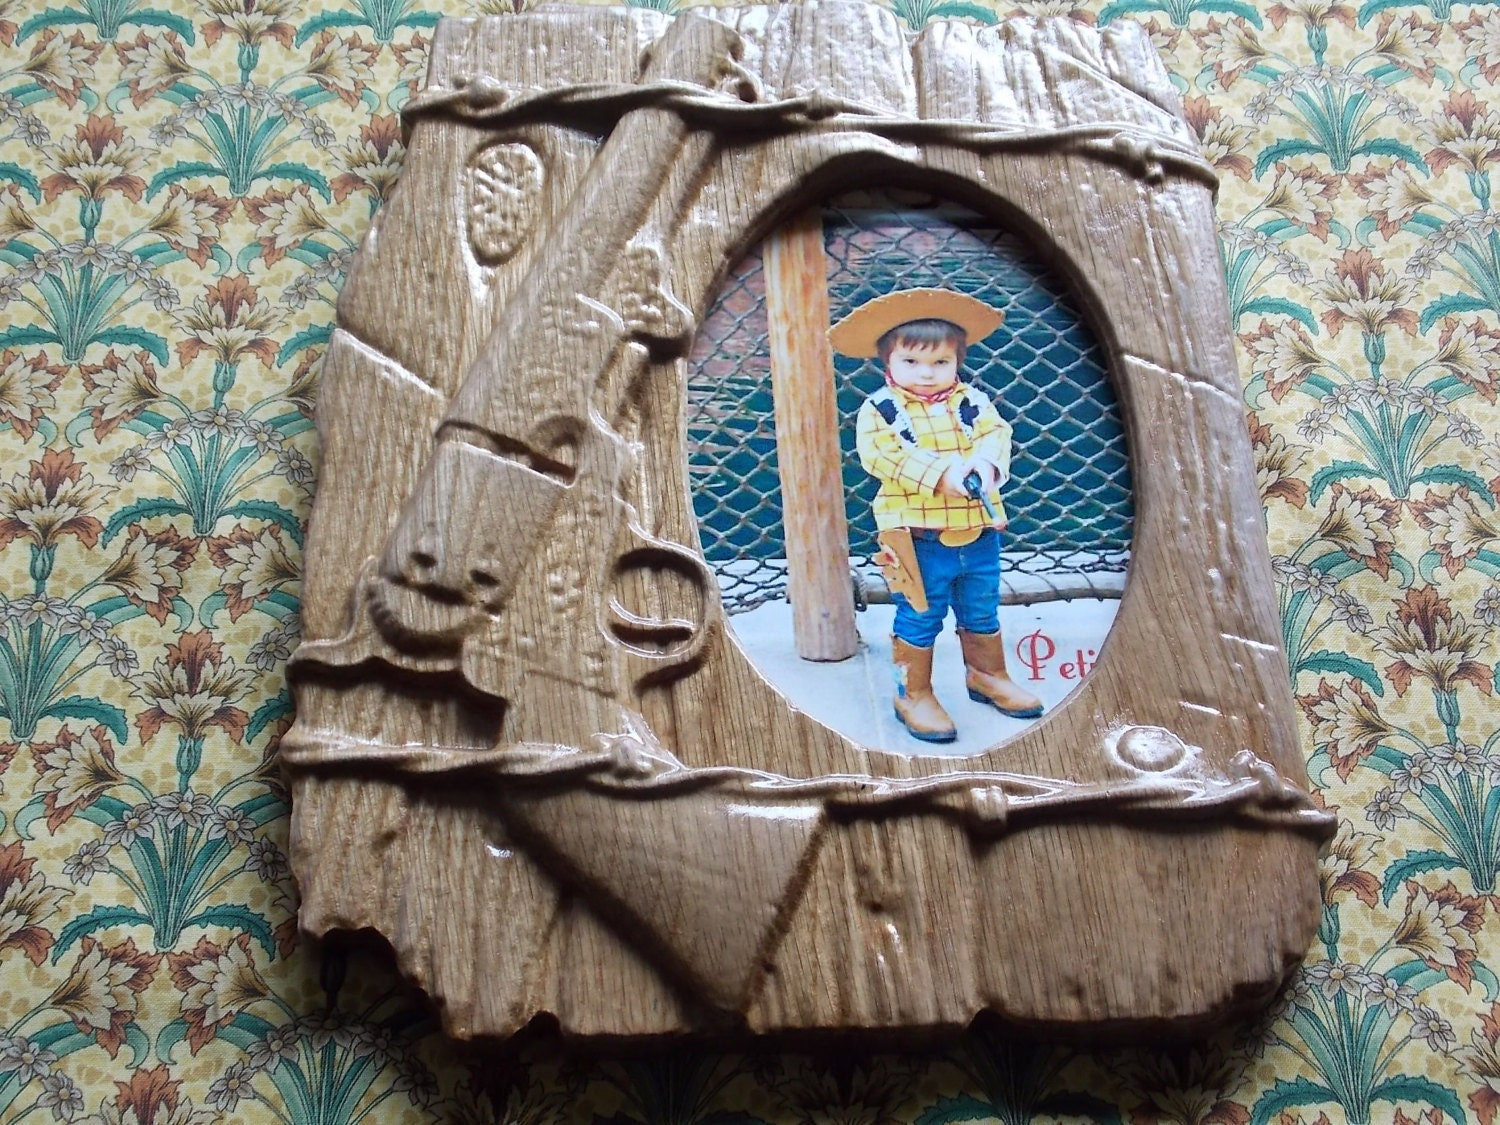 Wood Carvings For Sale Western Picture Frames Barbed